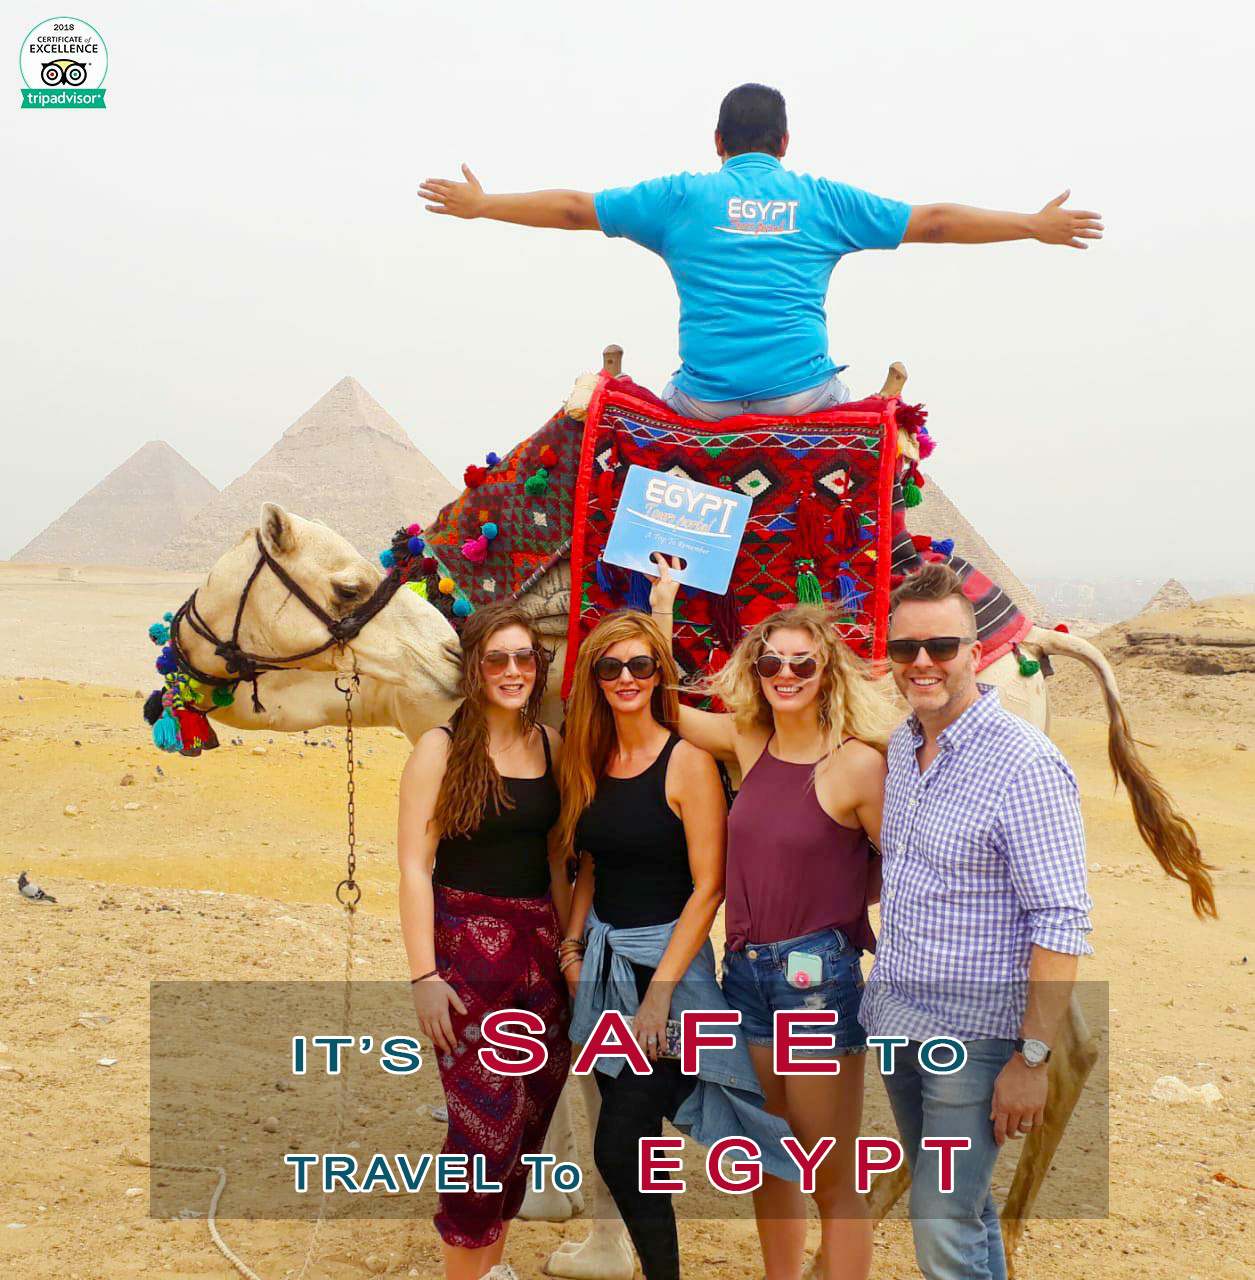 Giza Pyramids - It's Safe to Travel to Egypt - Egypt Tours Portal